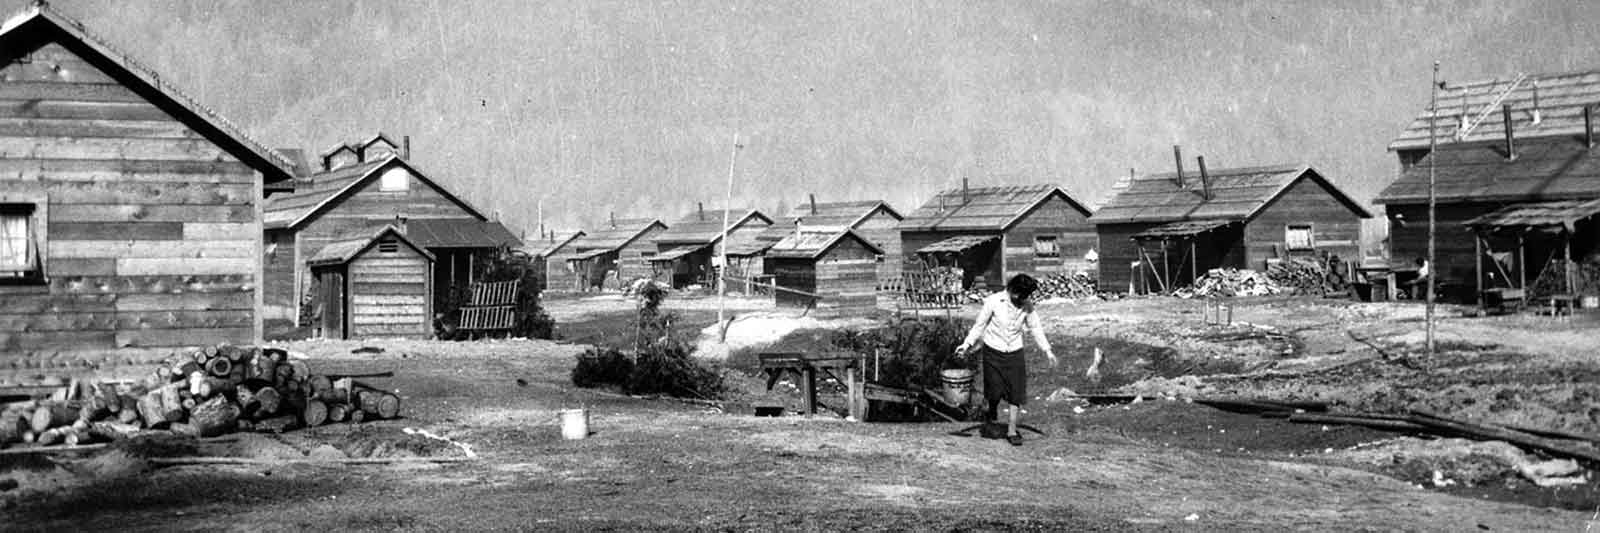 life in the internment camp